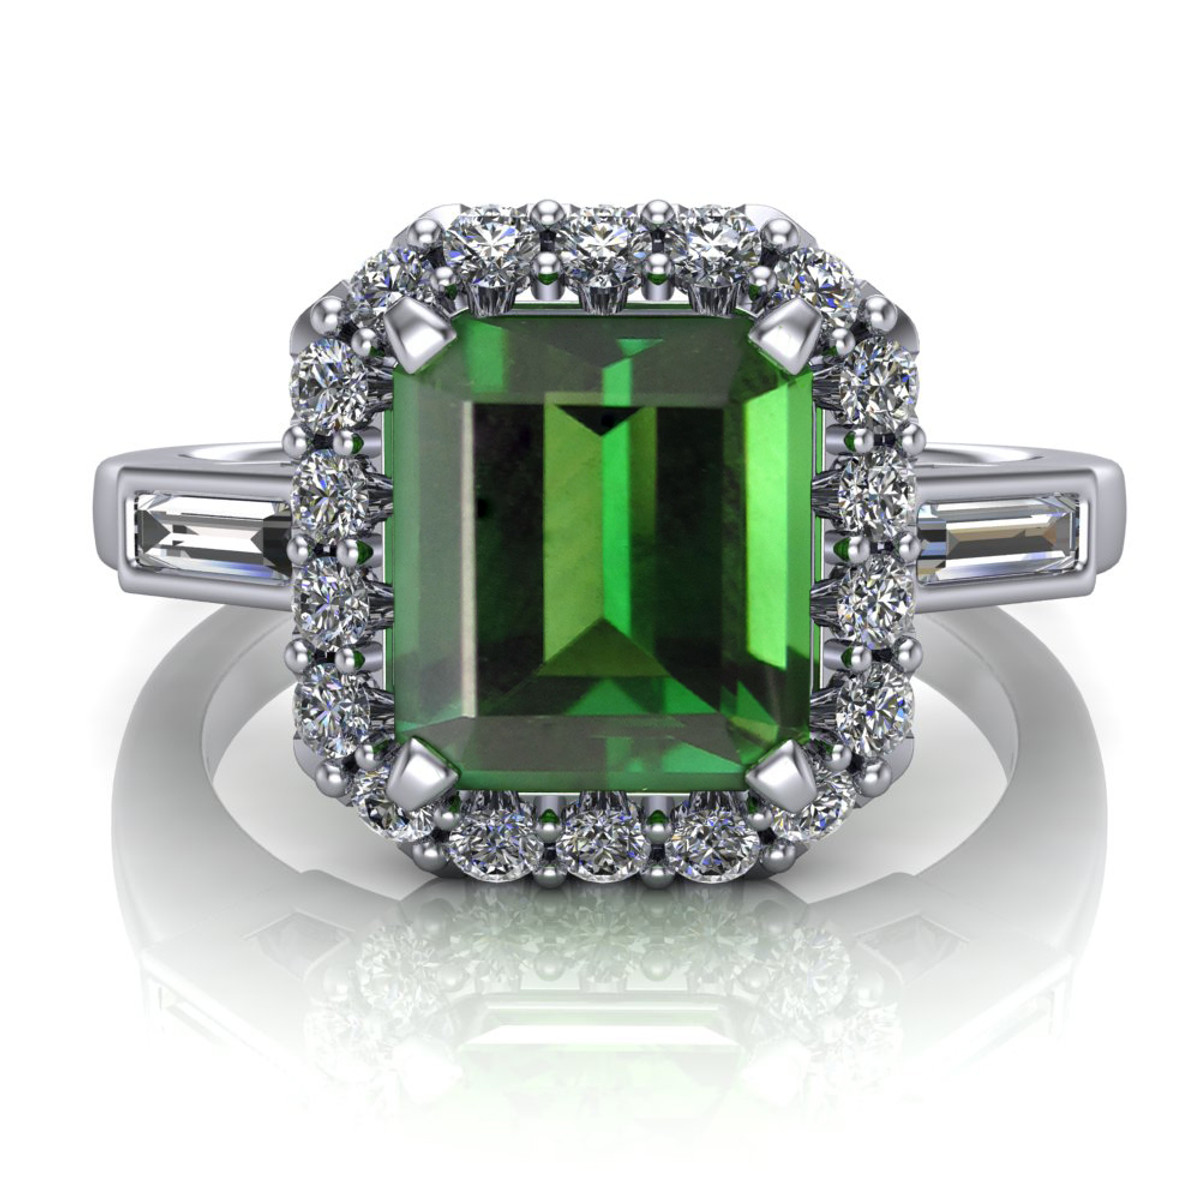 band jewelry bezel tourmaline tournaline solitaire rare and accented products gold ring cut setting cushion green with diamond rings set earth engagement diamonds